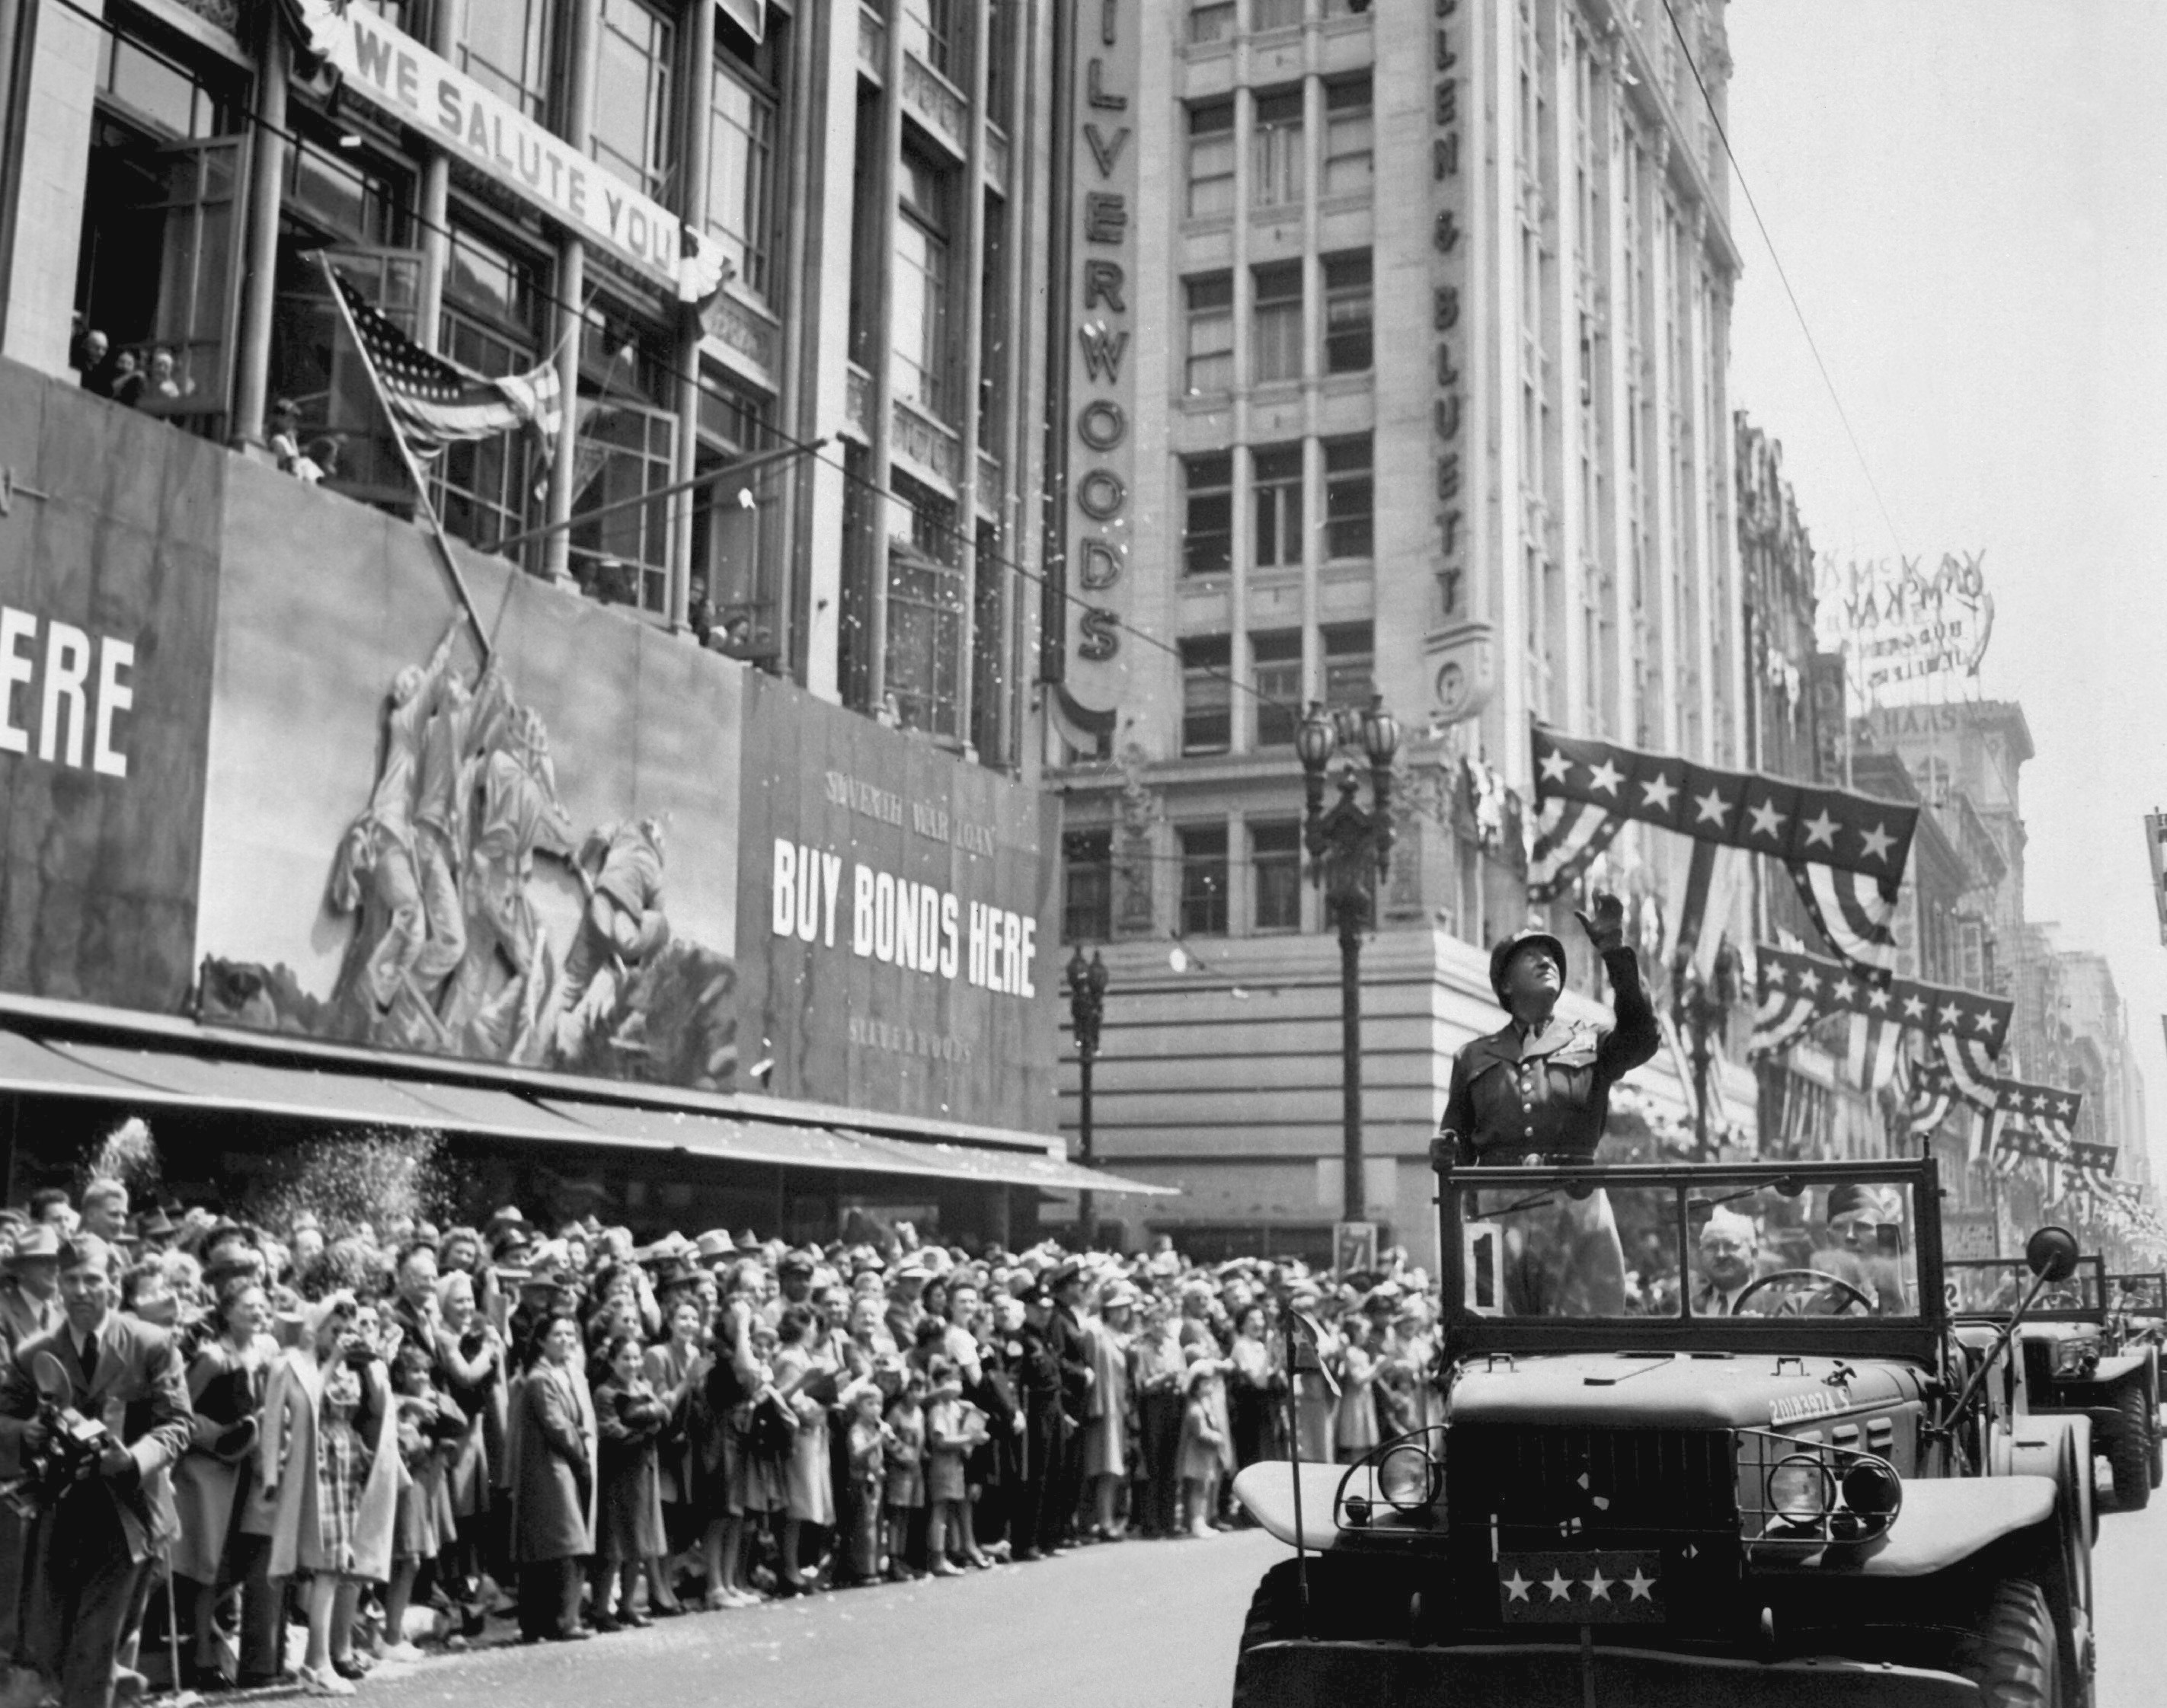 men s haircut los angeles file patton during a welcome home parade in los angeles 1945 | Patton during a welcome home parade in Los Angeles%2C June 9%2C 1945